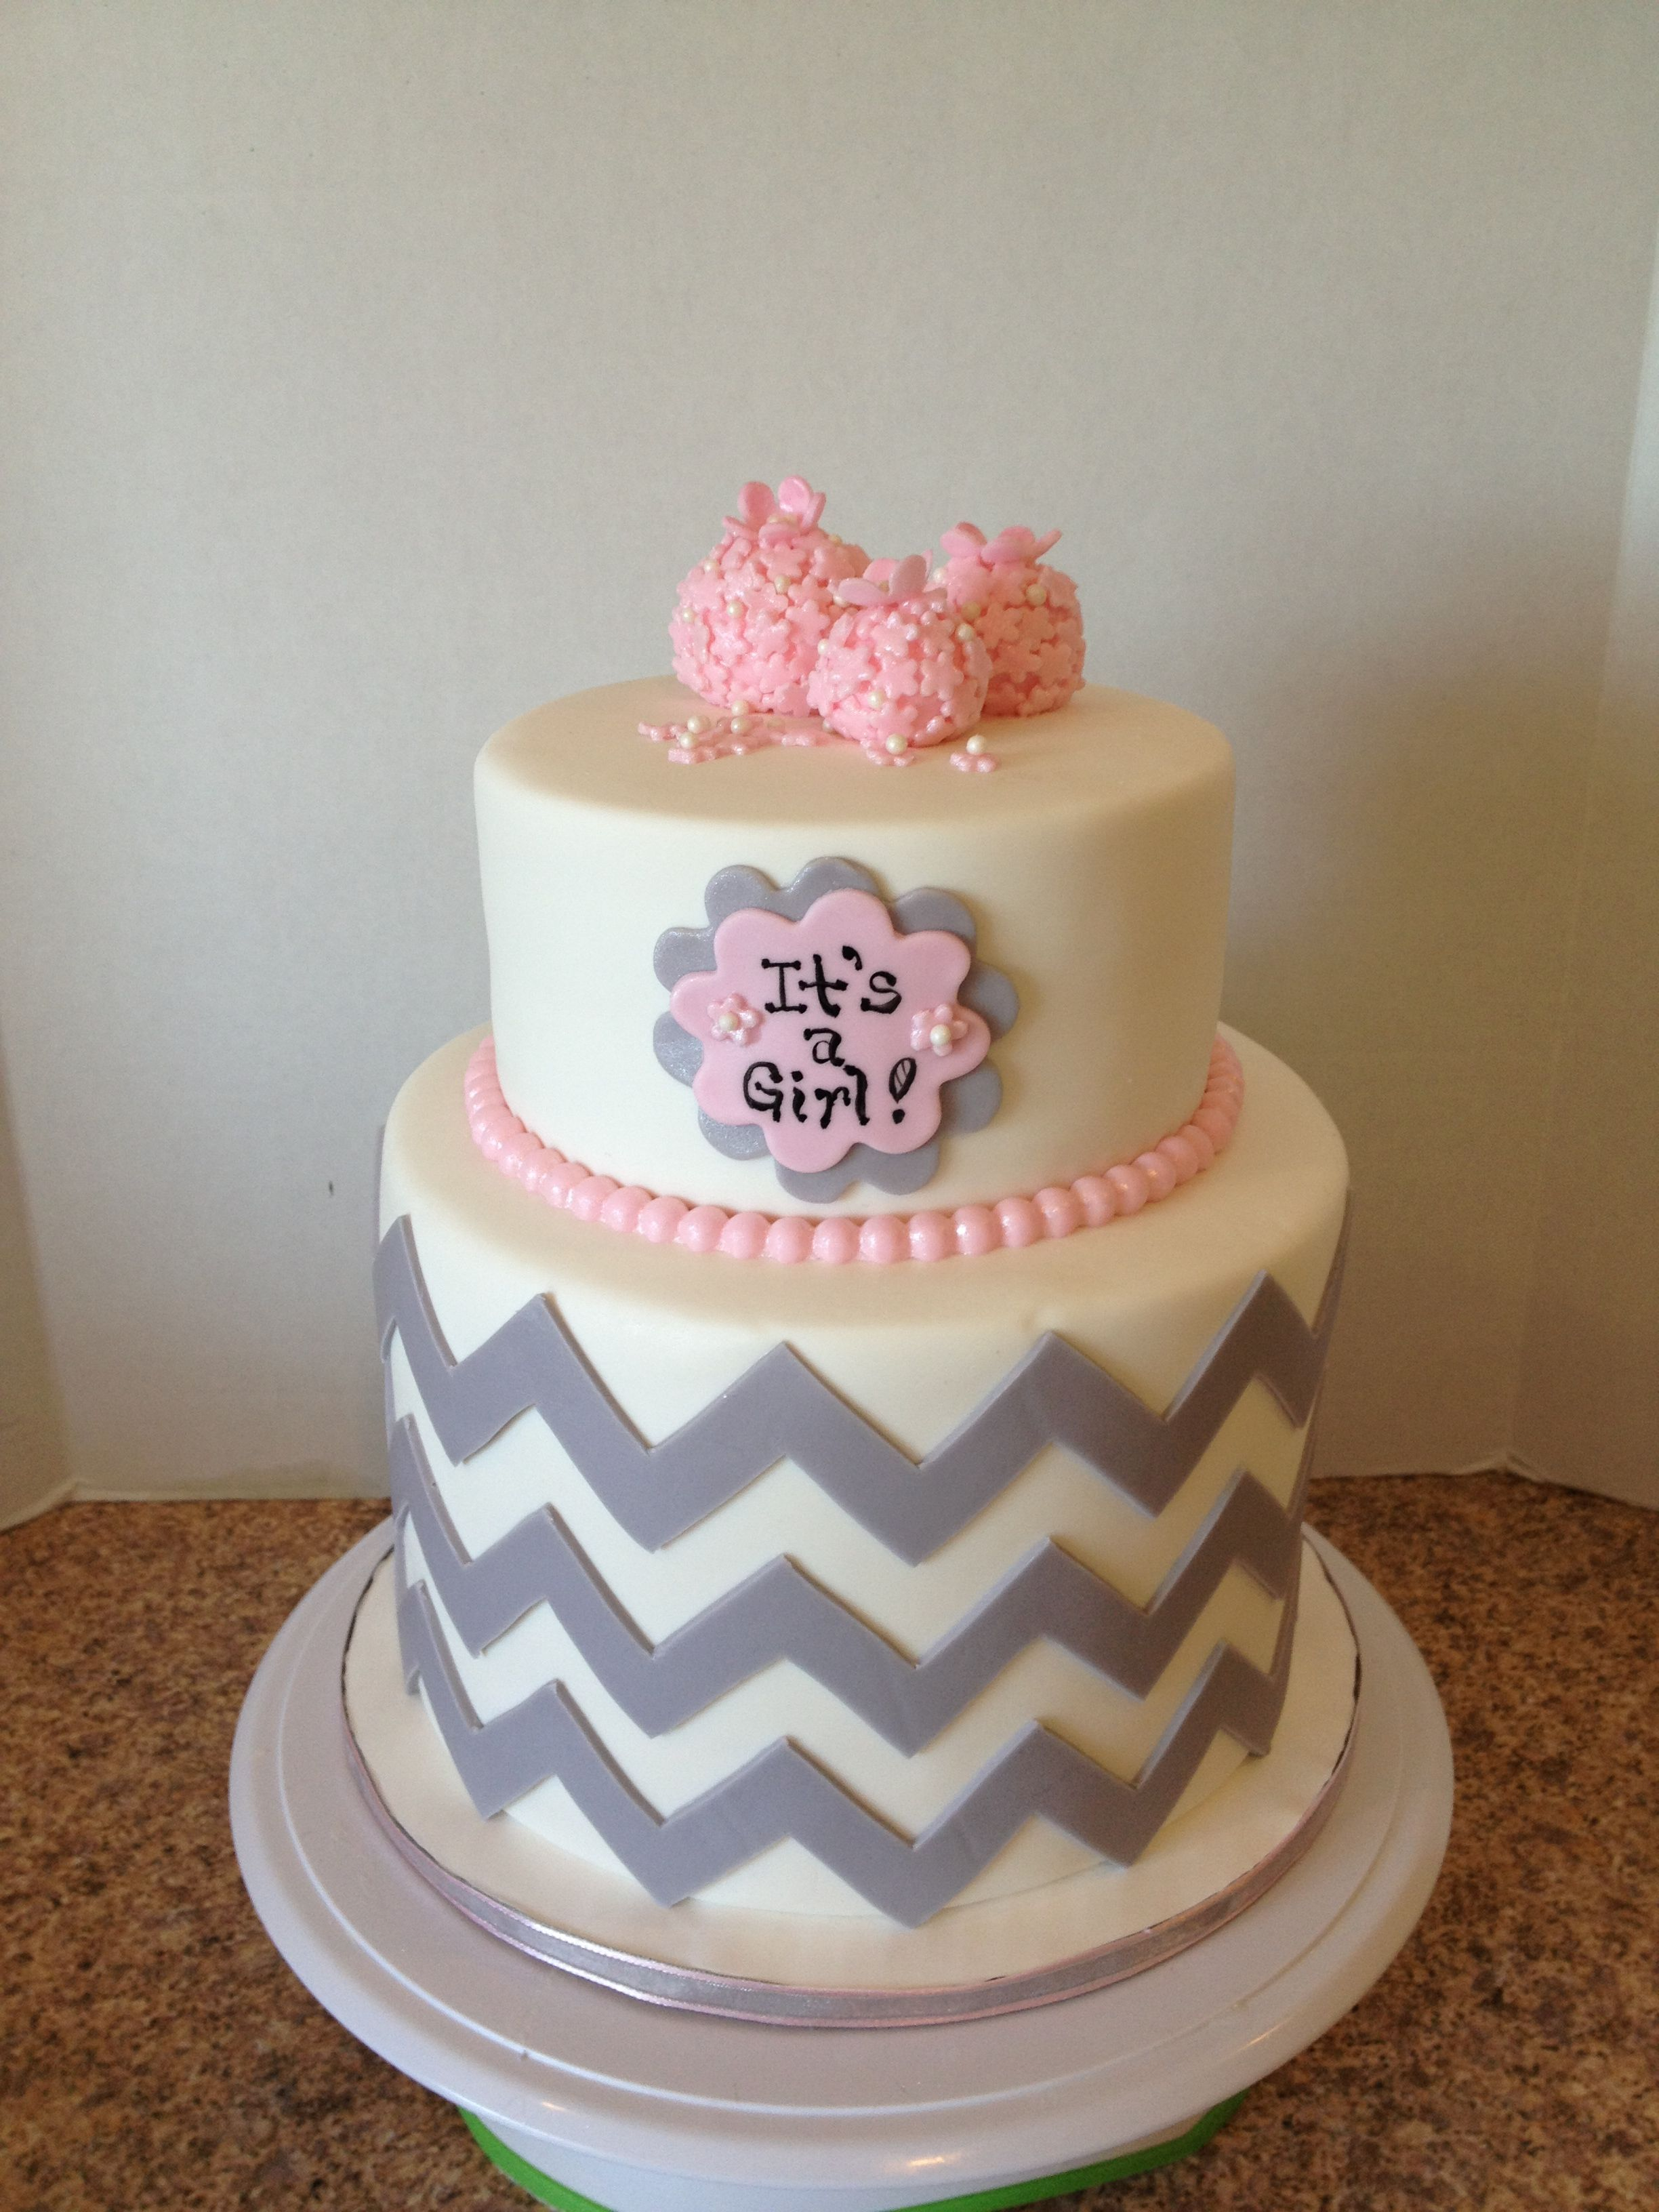 Chevron Baby Shower Cake Bottom Tier Was A Double Barrel Cake 6 Inches Tall The Top Tier Was 4 Inches Tall